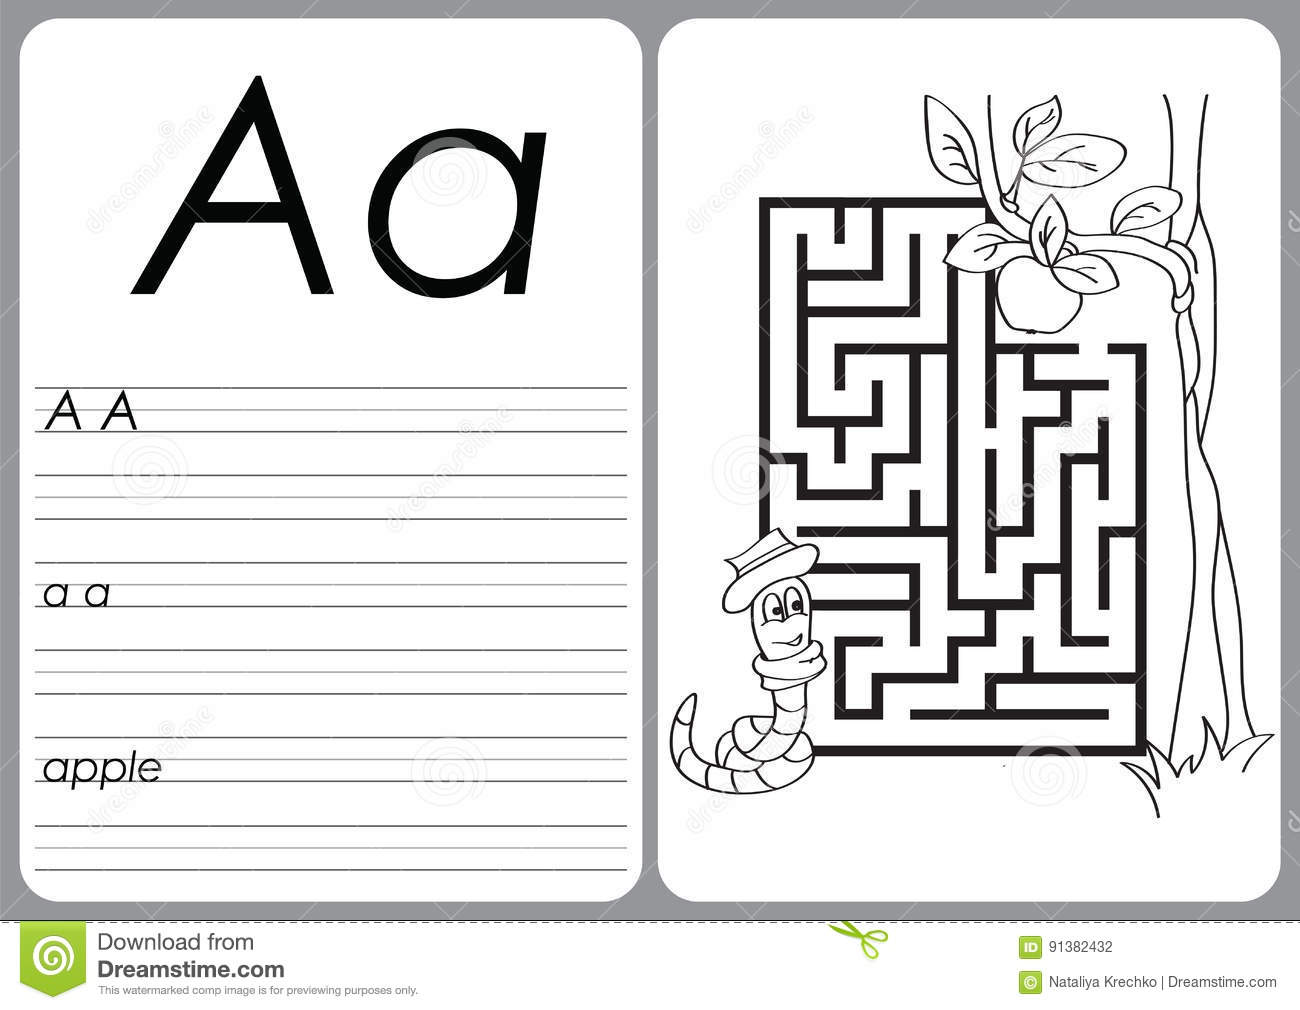 graphic regarding Alphabet Puzzle Printable known as Alphabet A-Z - Puzzle Worksheet - Coloring Guide Inventory Vector